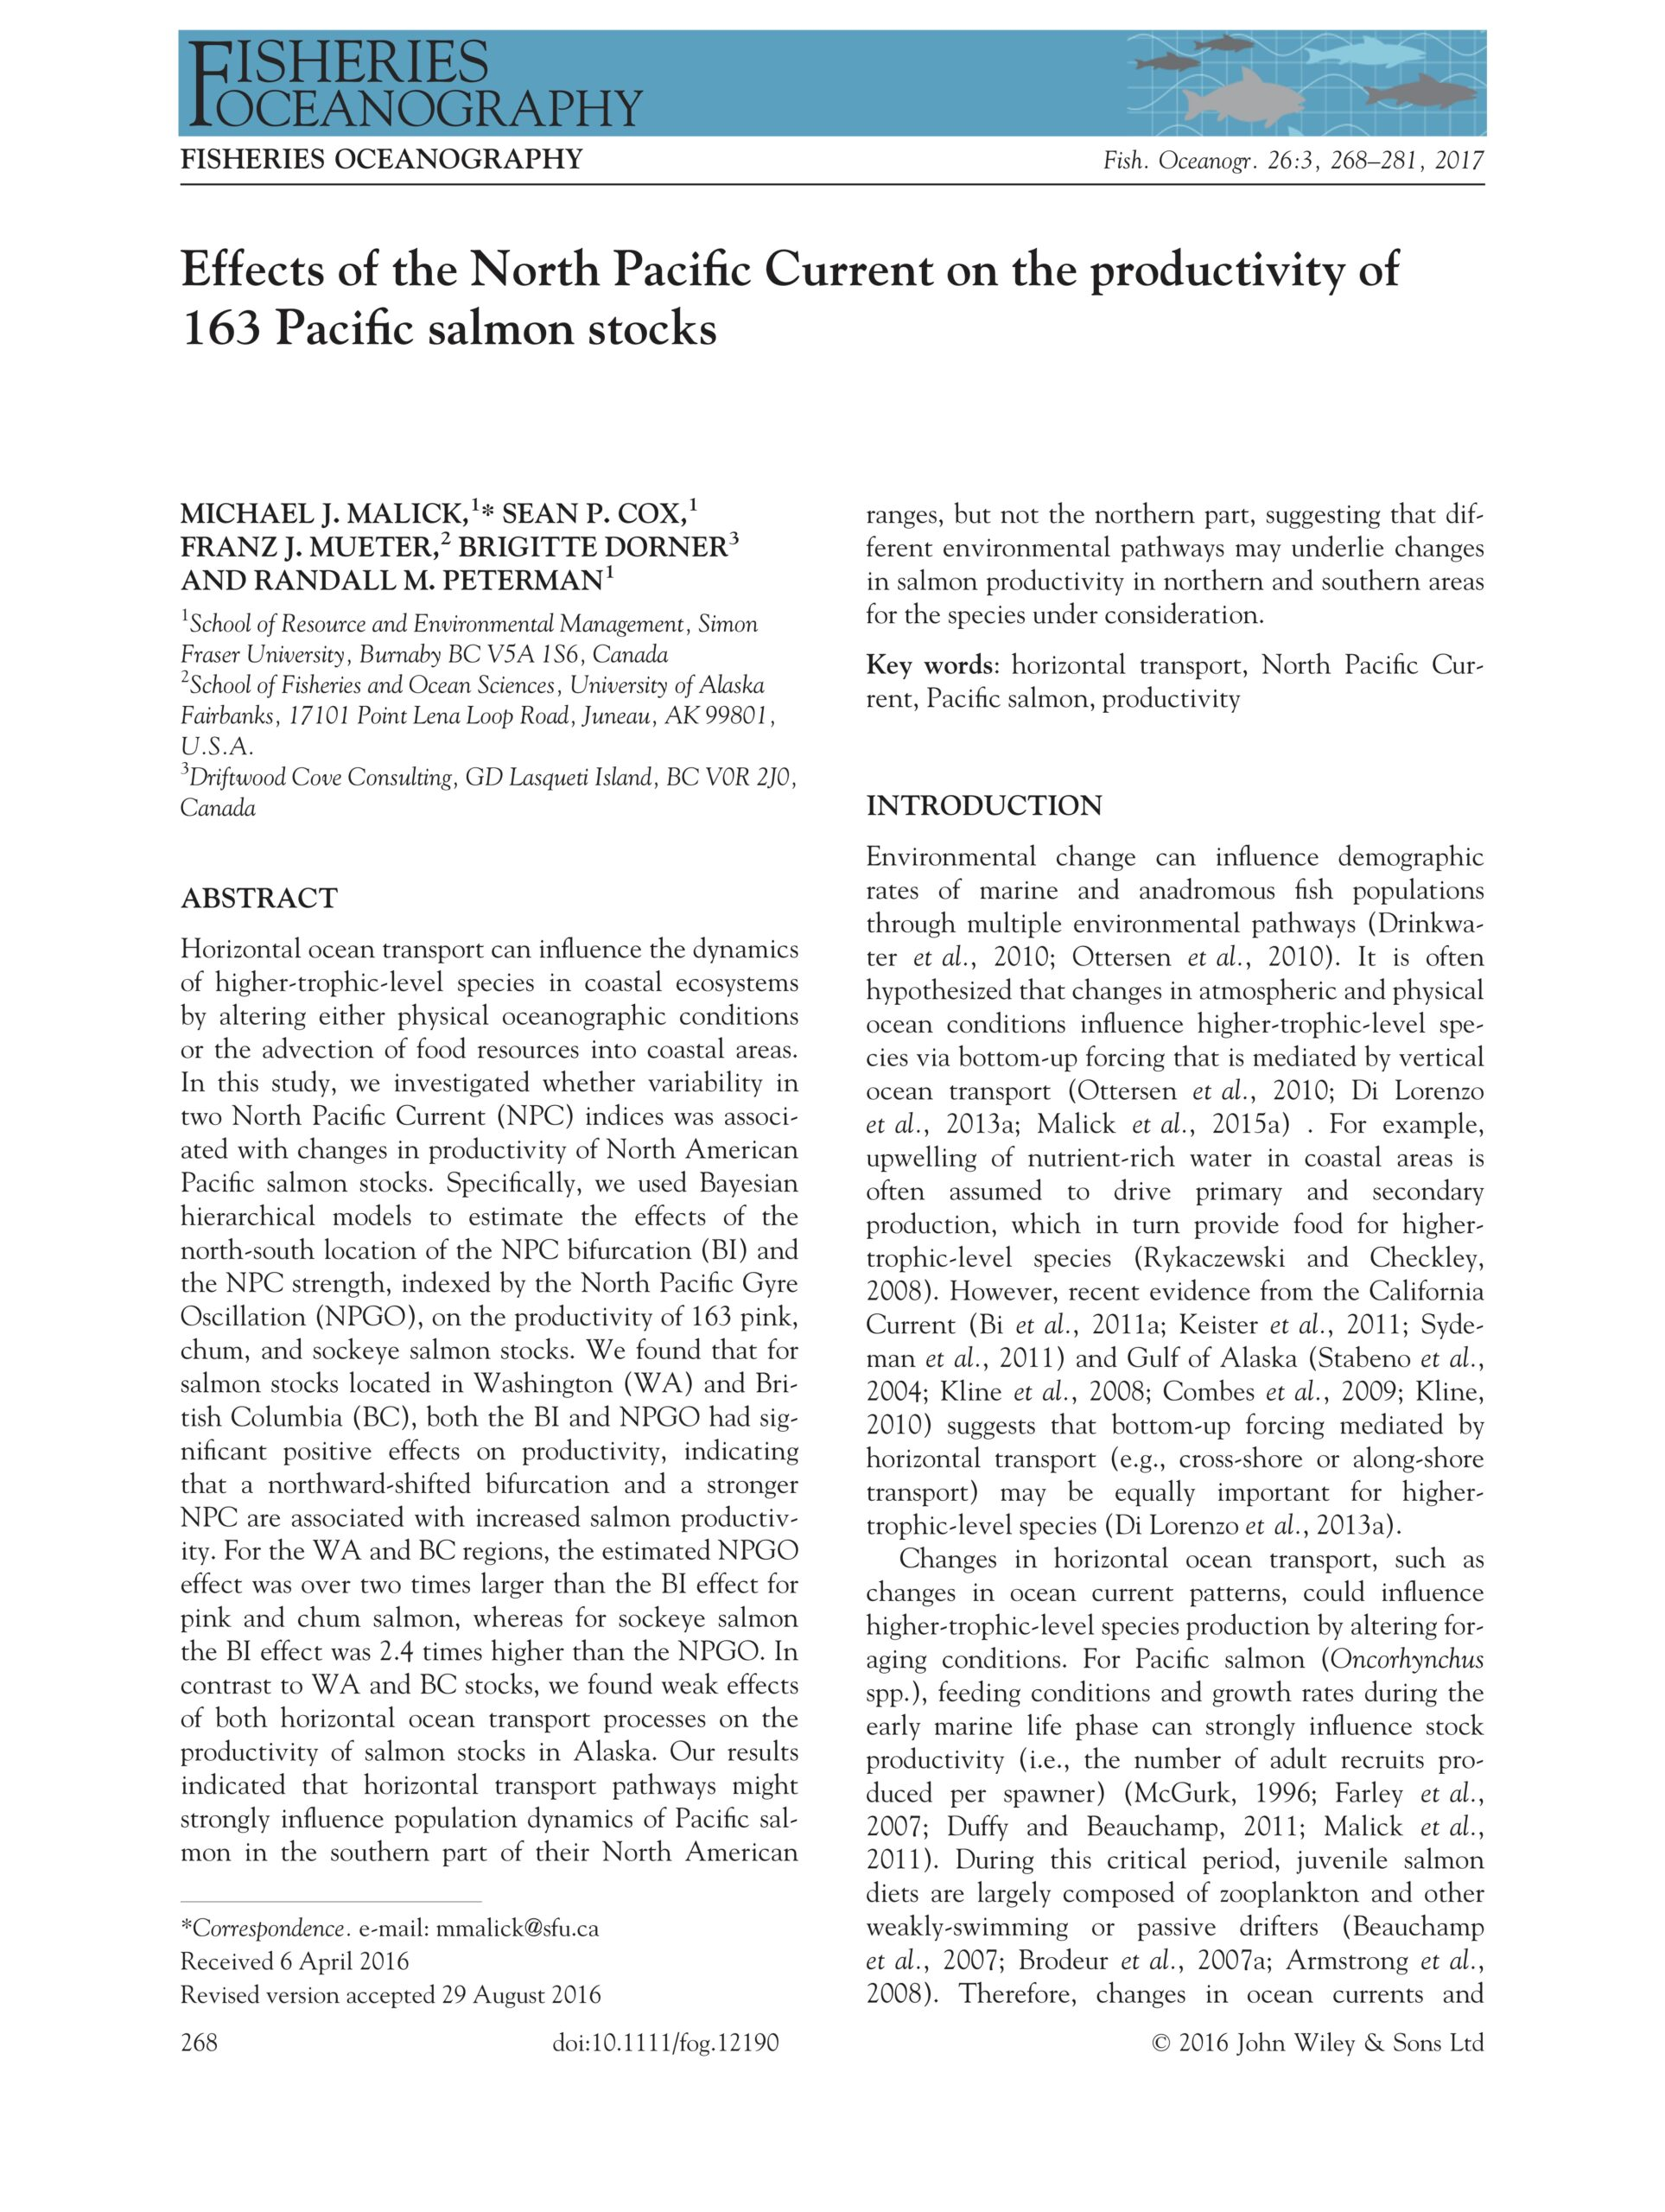 Malick et al. 2016: Effects of the North Pacific Current on the productivity of 163 Pacific salmon stocks